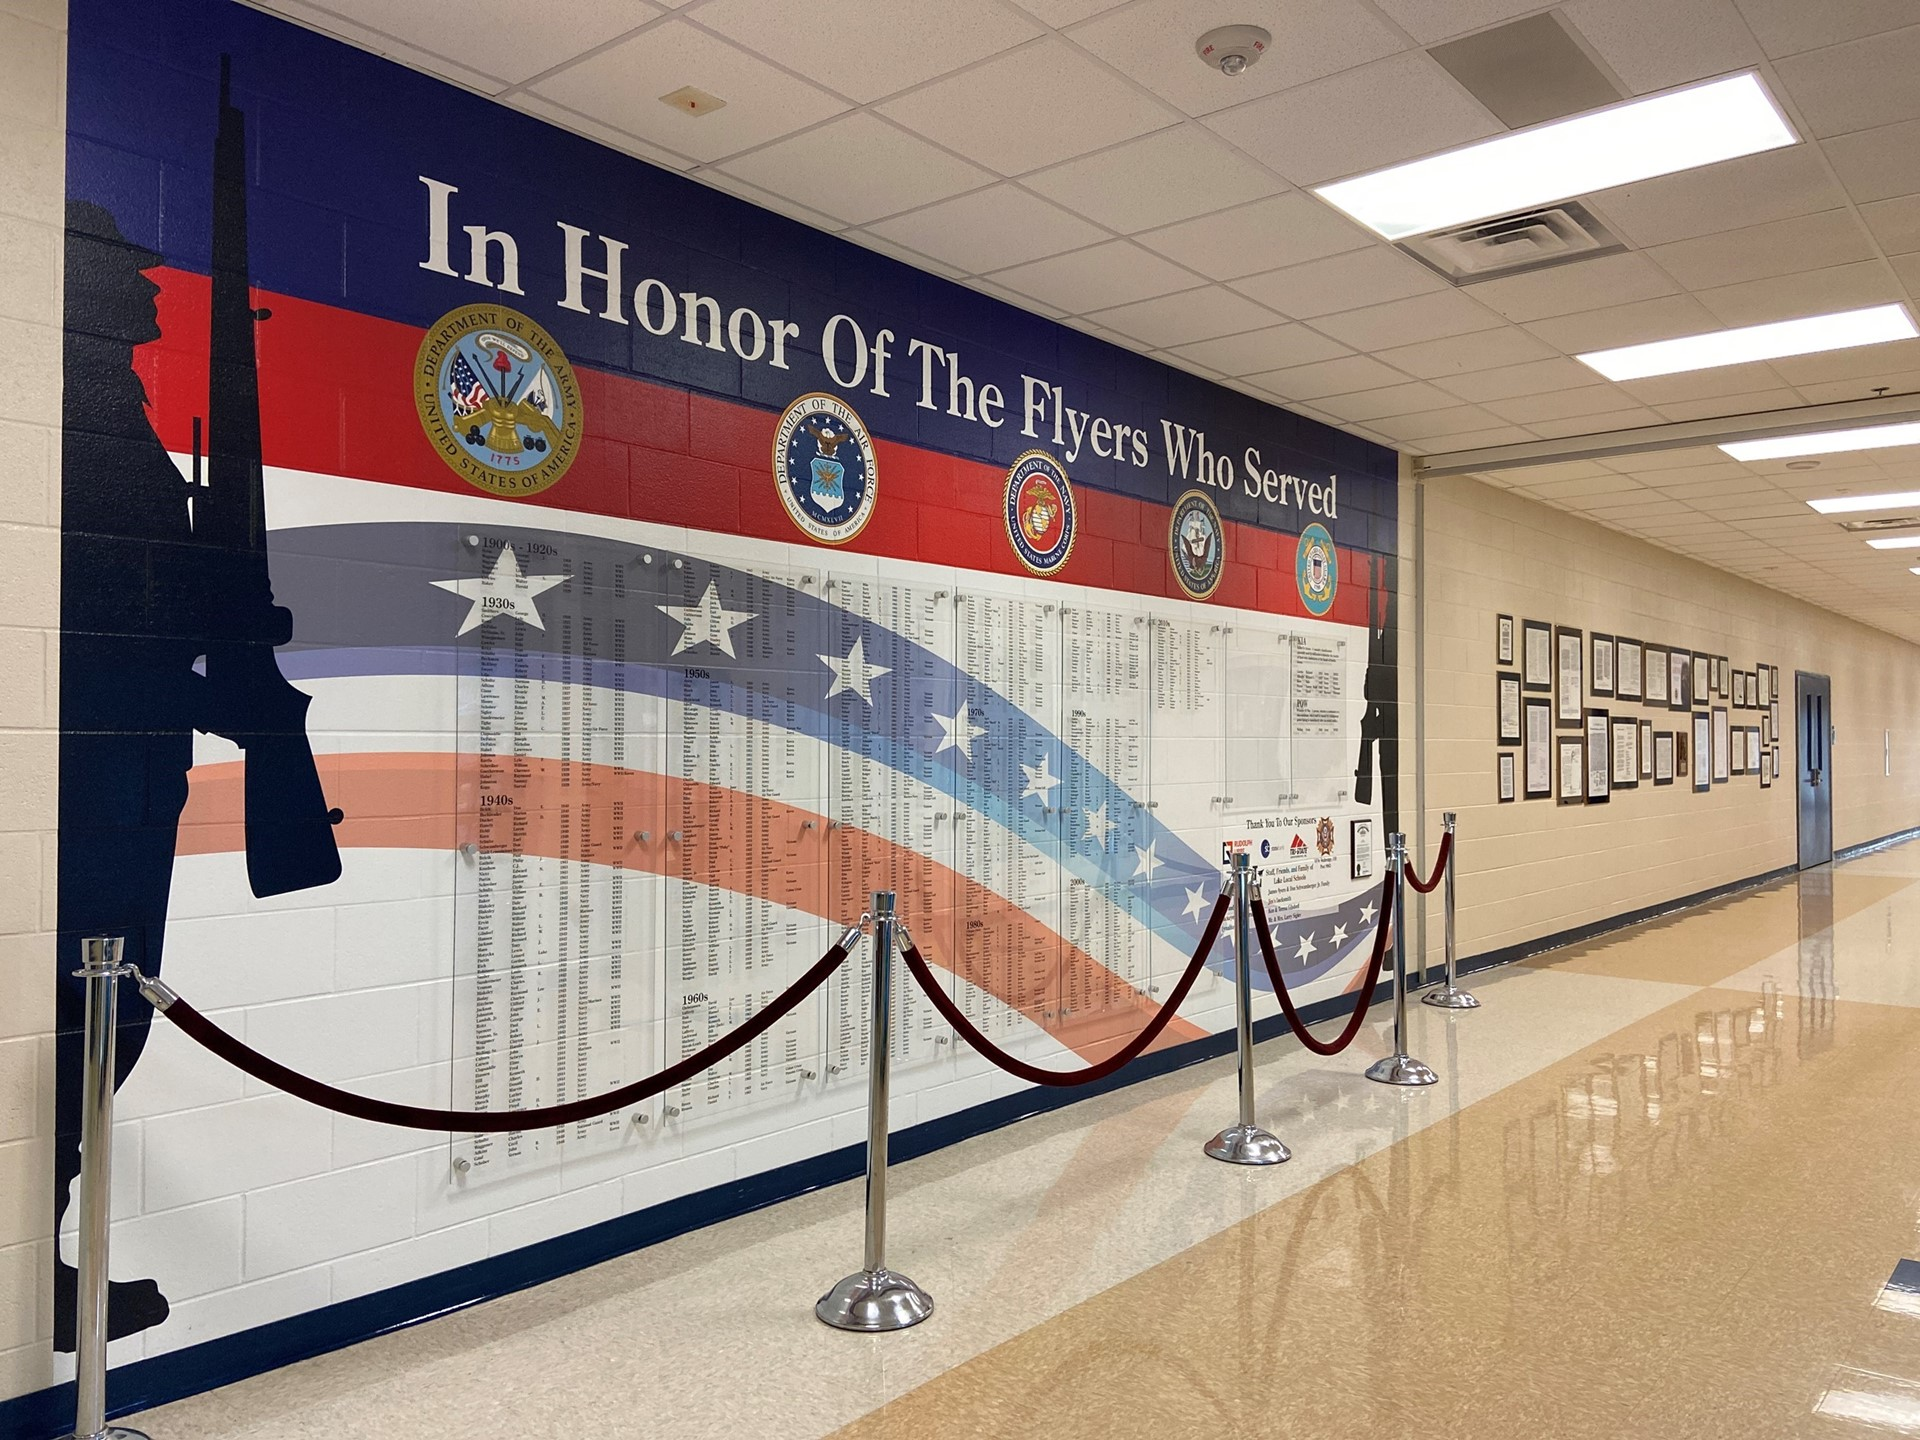 Veteran's wall at Lake High School In Honor of the Flyers Who Served